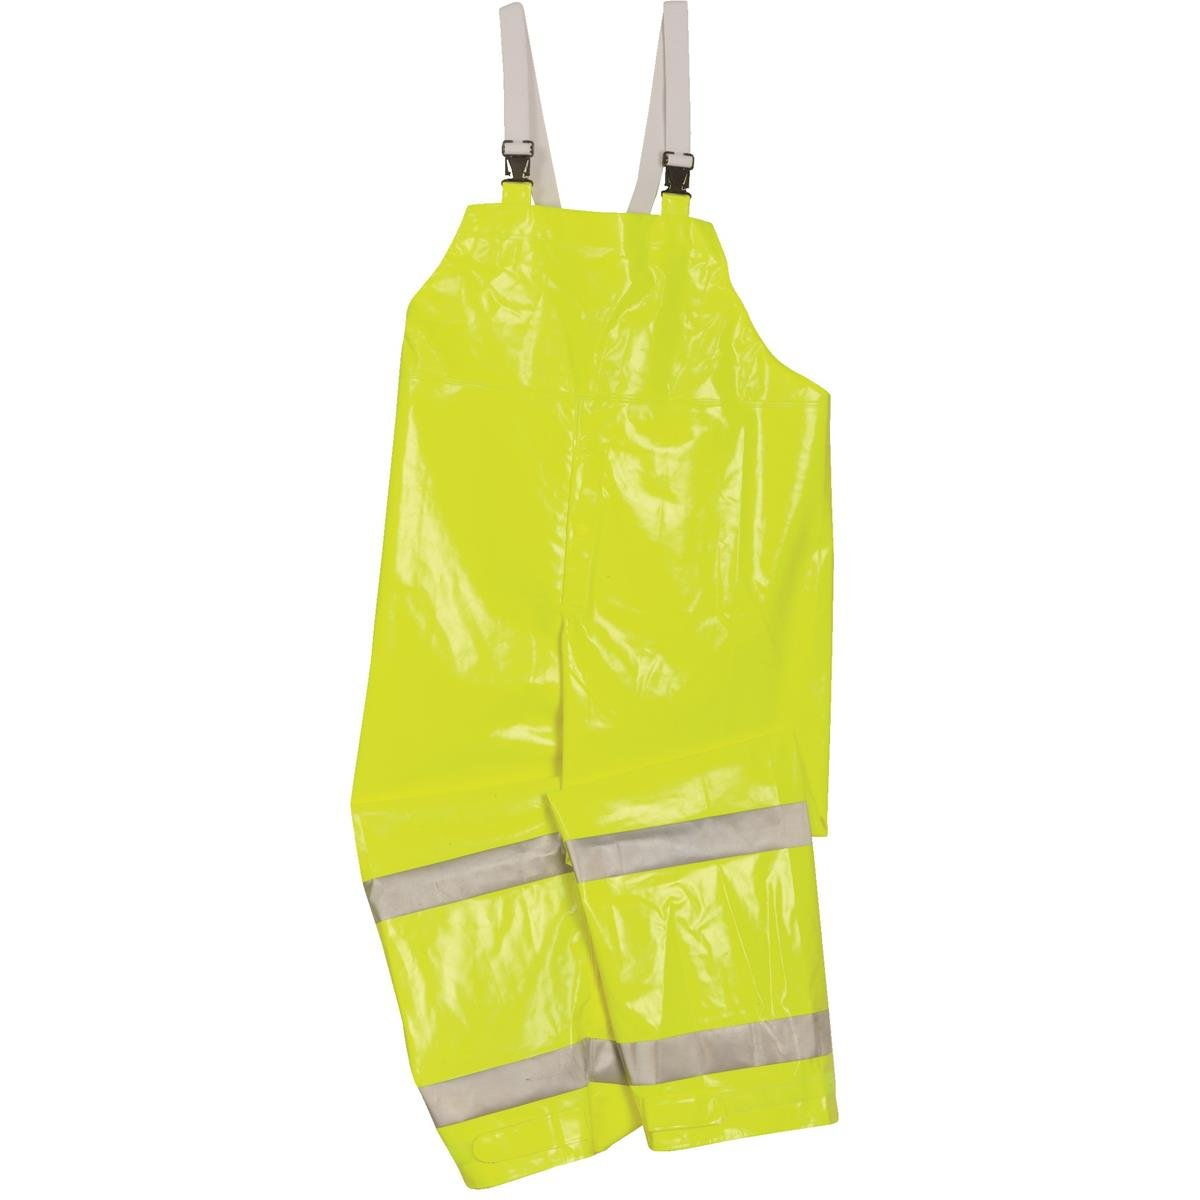 Brite Safety Style 5213 FR Safety Raingear | Hi Vis Rain Bib Overall | Waterproof | Flame Resistant | ANSI 107 Class E Compliant (Medium, Hi Vis Yellow)